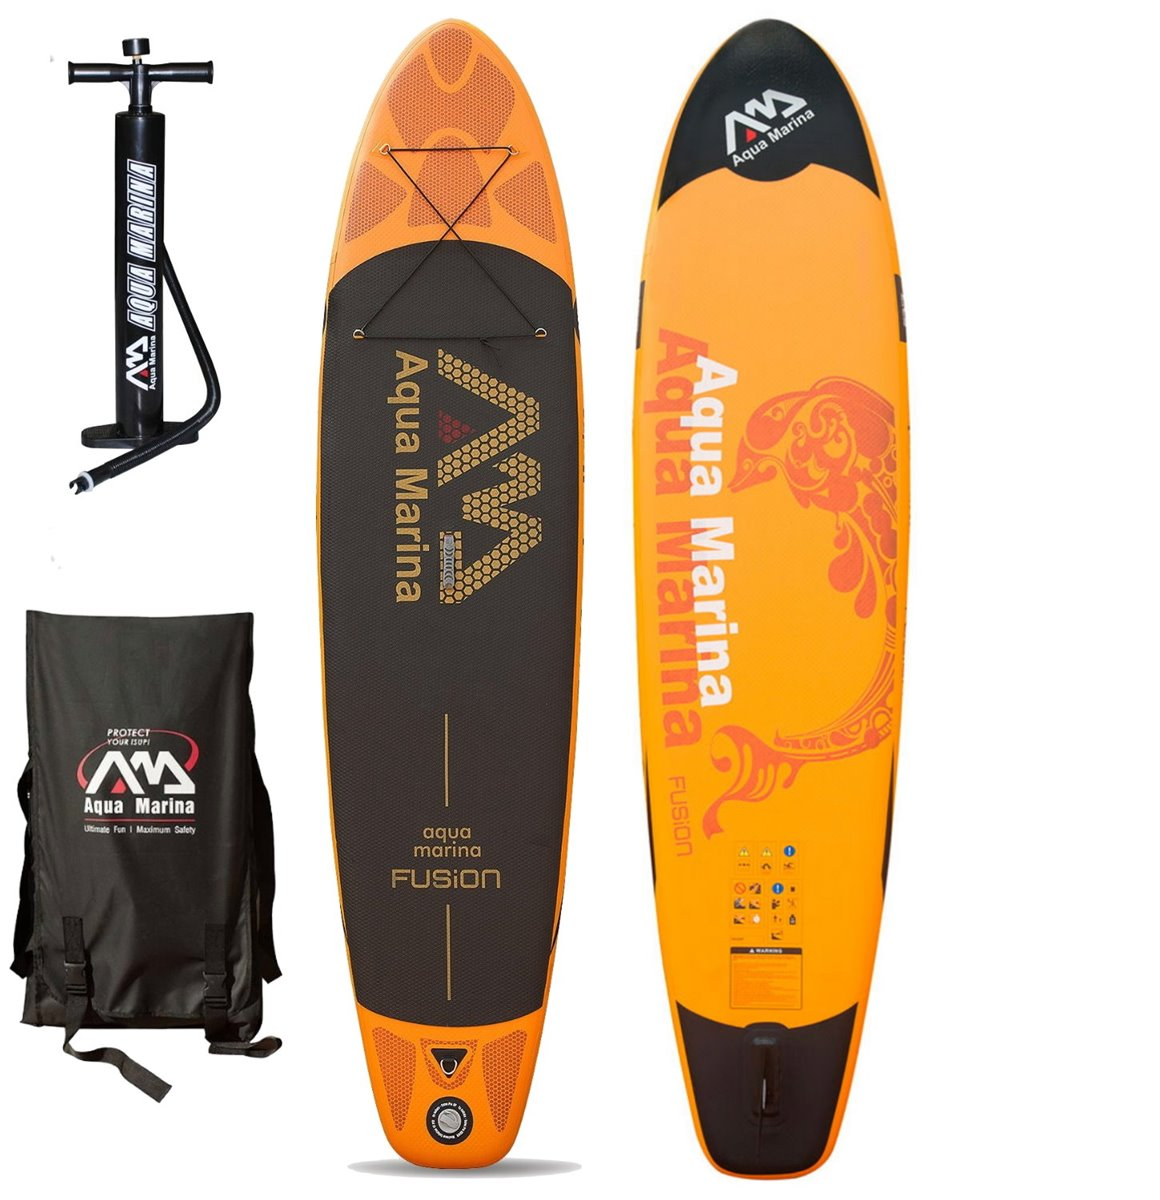 FUSION INFLATABLE SUP BOARD PACKAGE AQUA MARINA 2017